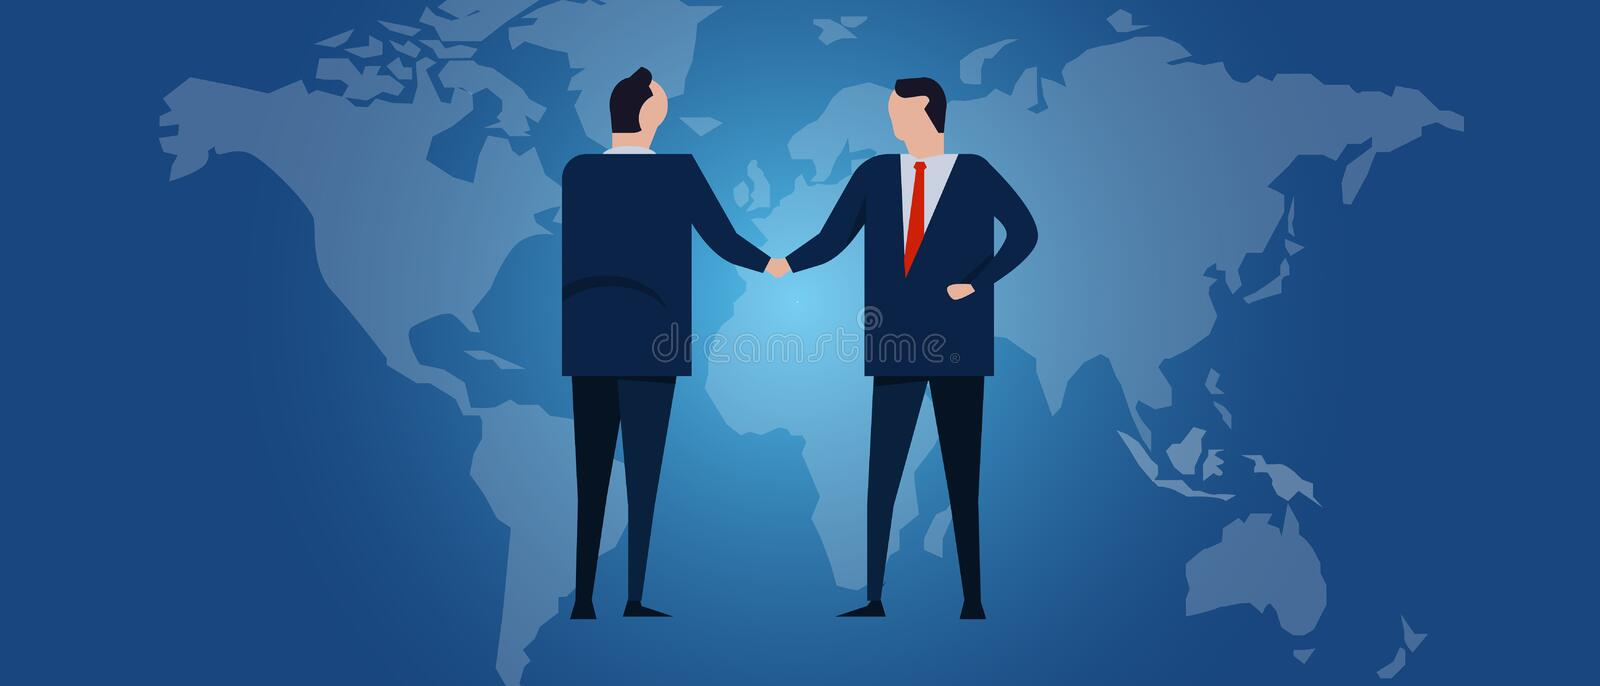 Global international partnership. Diplomacy negotiation. Business relationship agreement handshake. Country flag and map. Corporate world wide business stock illustration